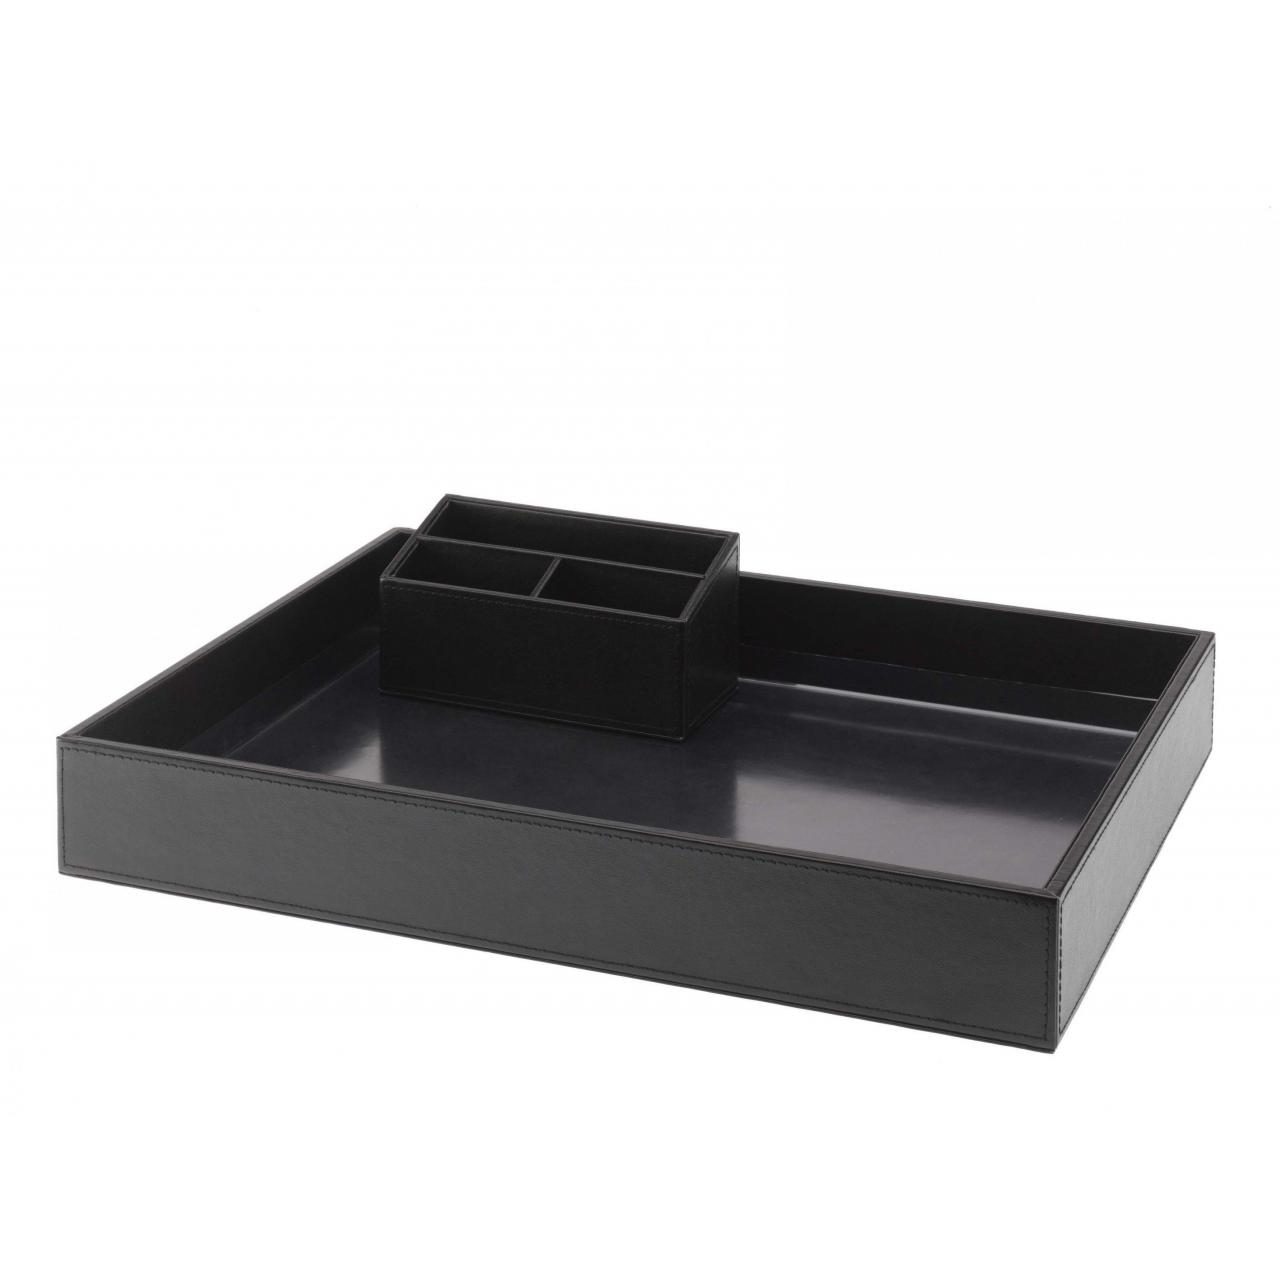 HENDON LEATHERETTE TRAY SET